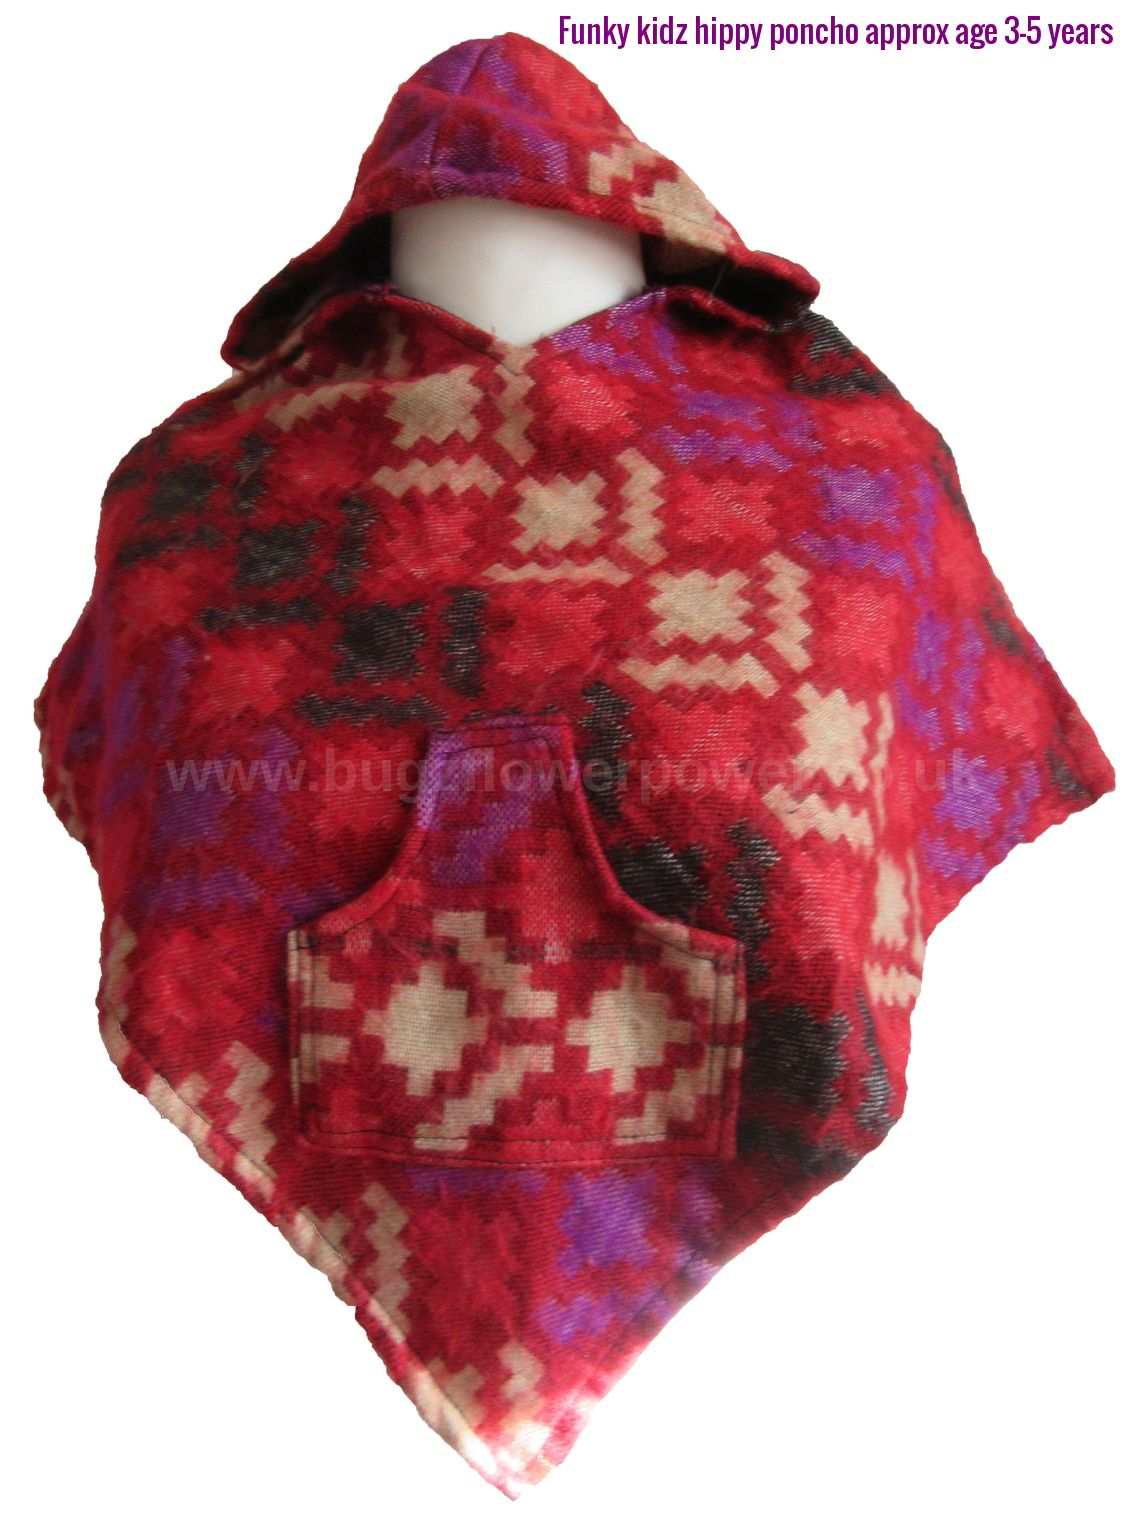 Funky kidz hippy rounded hood poncho approx 3-5 years